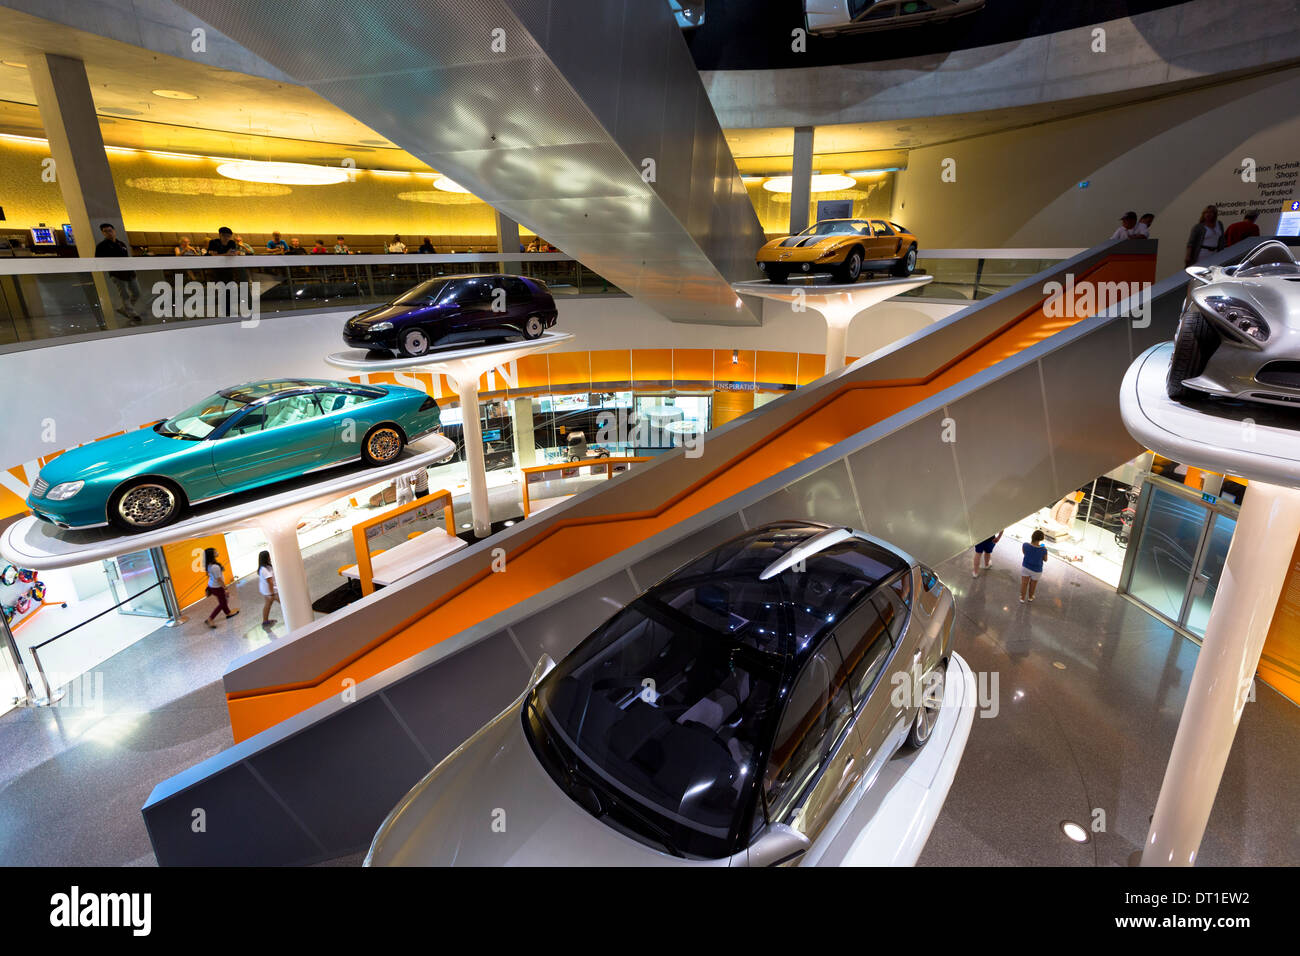 Mercedes-Benz concept cars in their museum gallery in Stuttgart, Bavaria, Germany - Stock Image